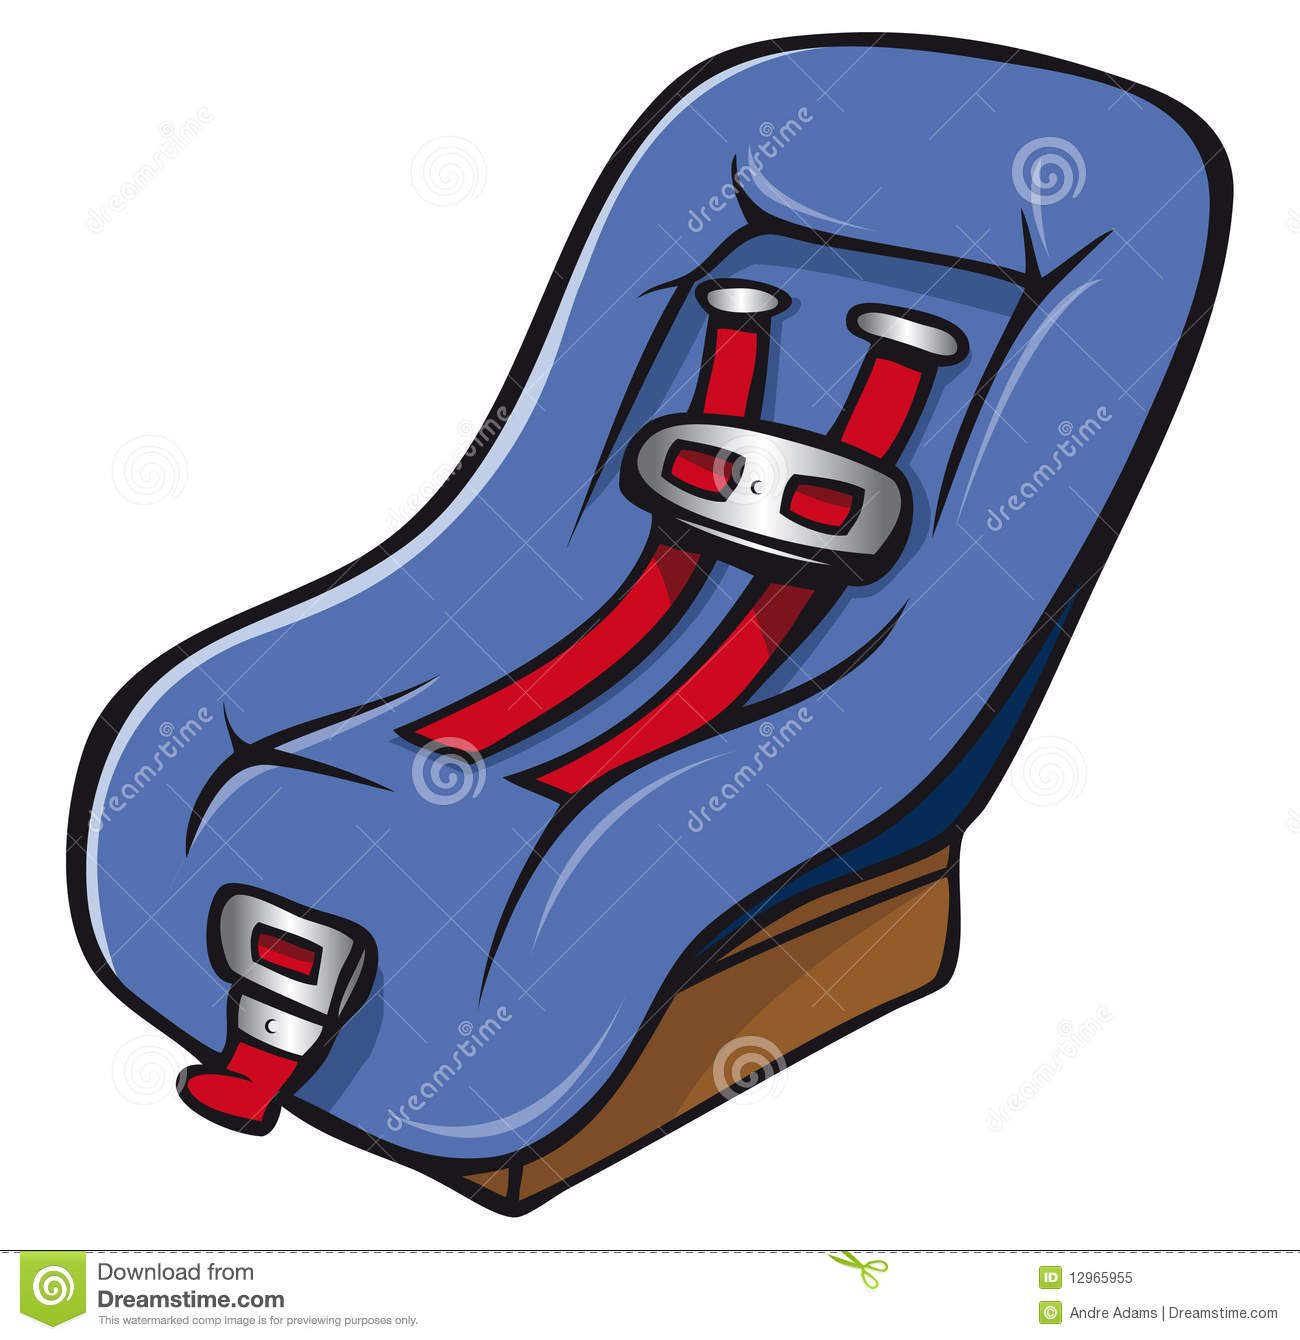 Child Car Seat Clipart Child Safety Seat-Child Car Seat Clipart Child Safety Seat-12